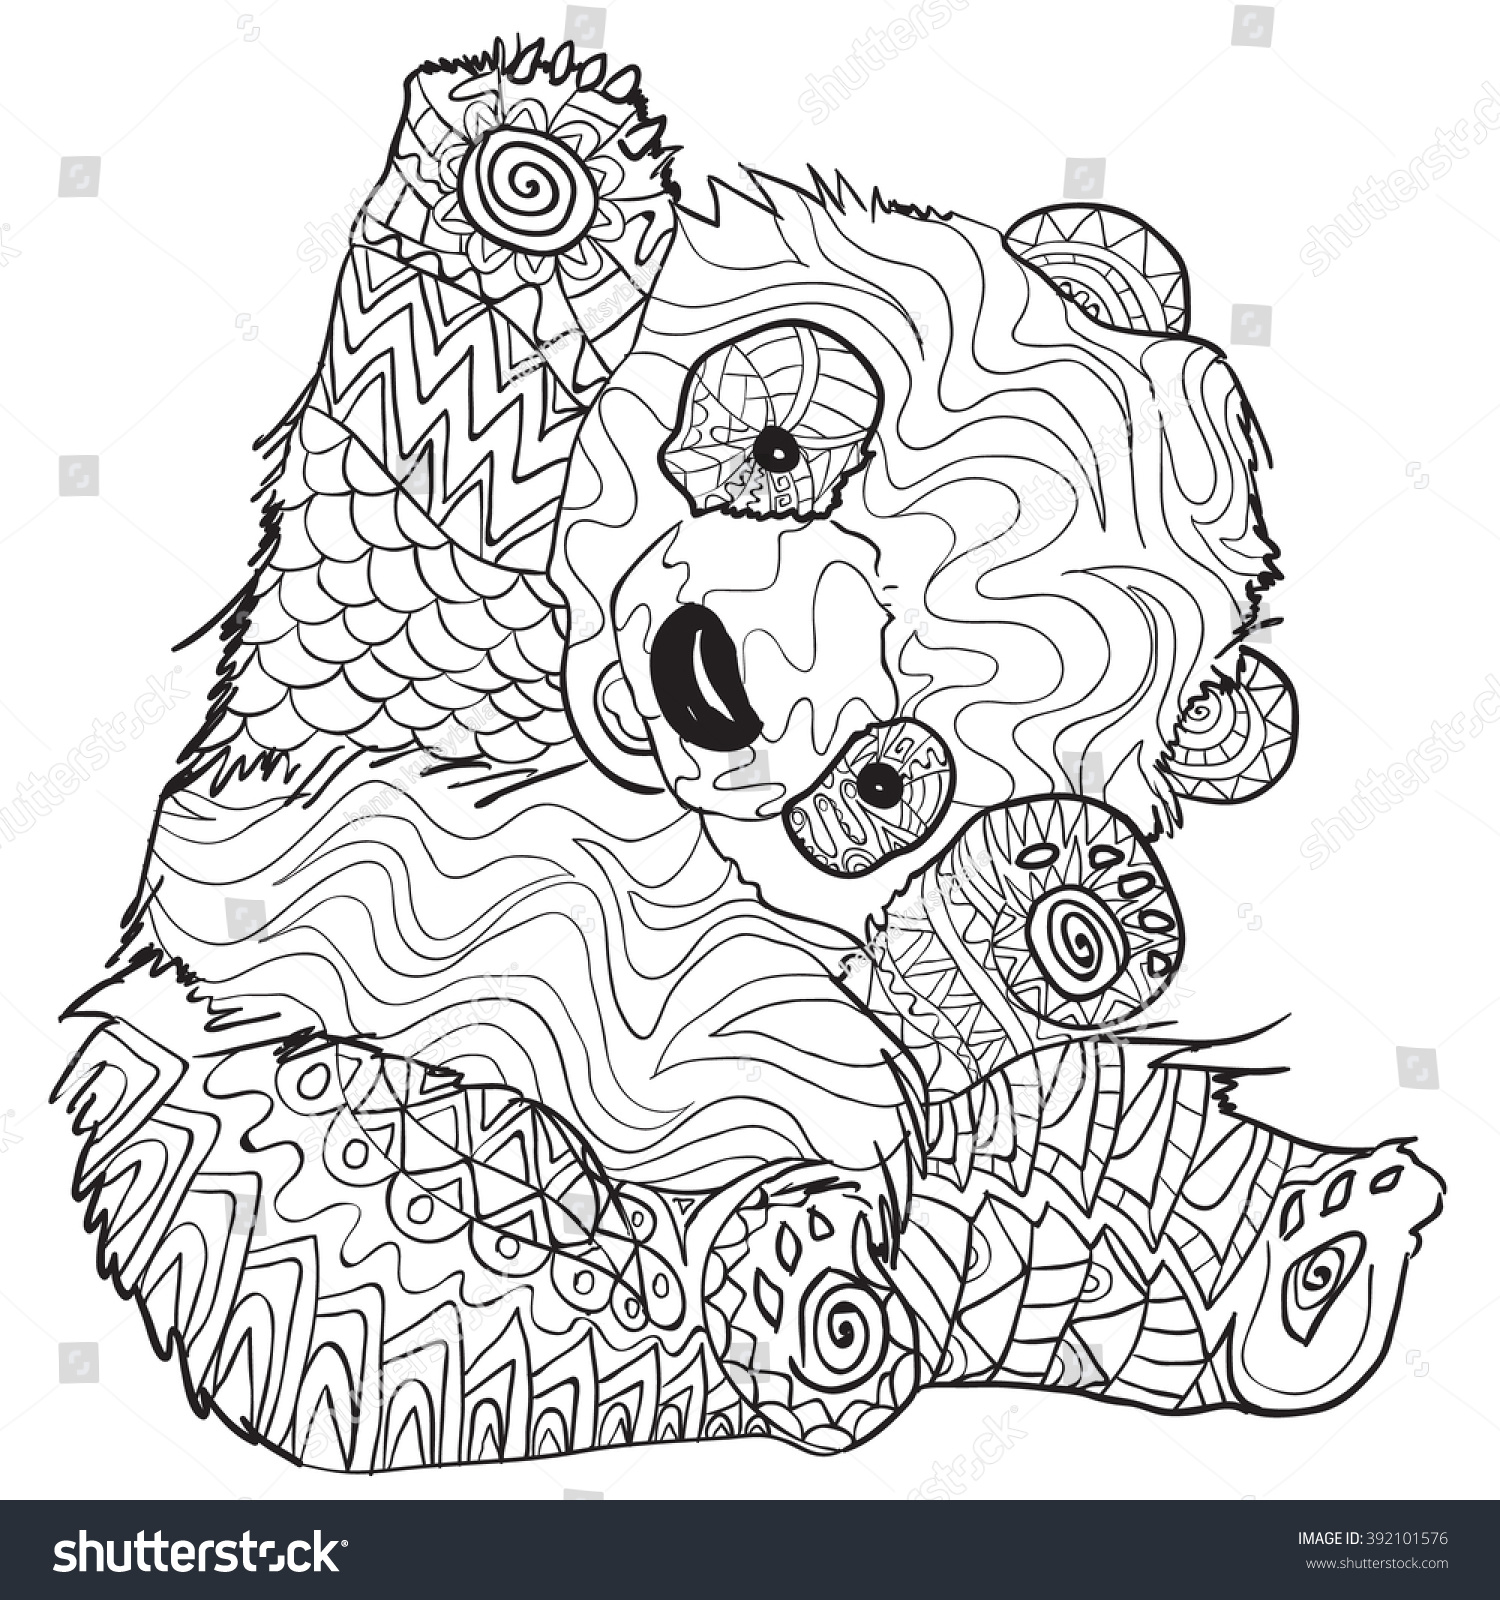 Hand Drawn Coloring Pages With Panda Illustration For Adult Anti Stress Books High